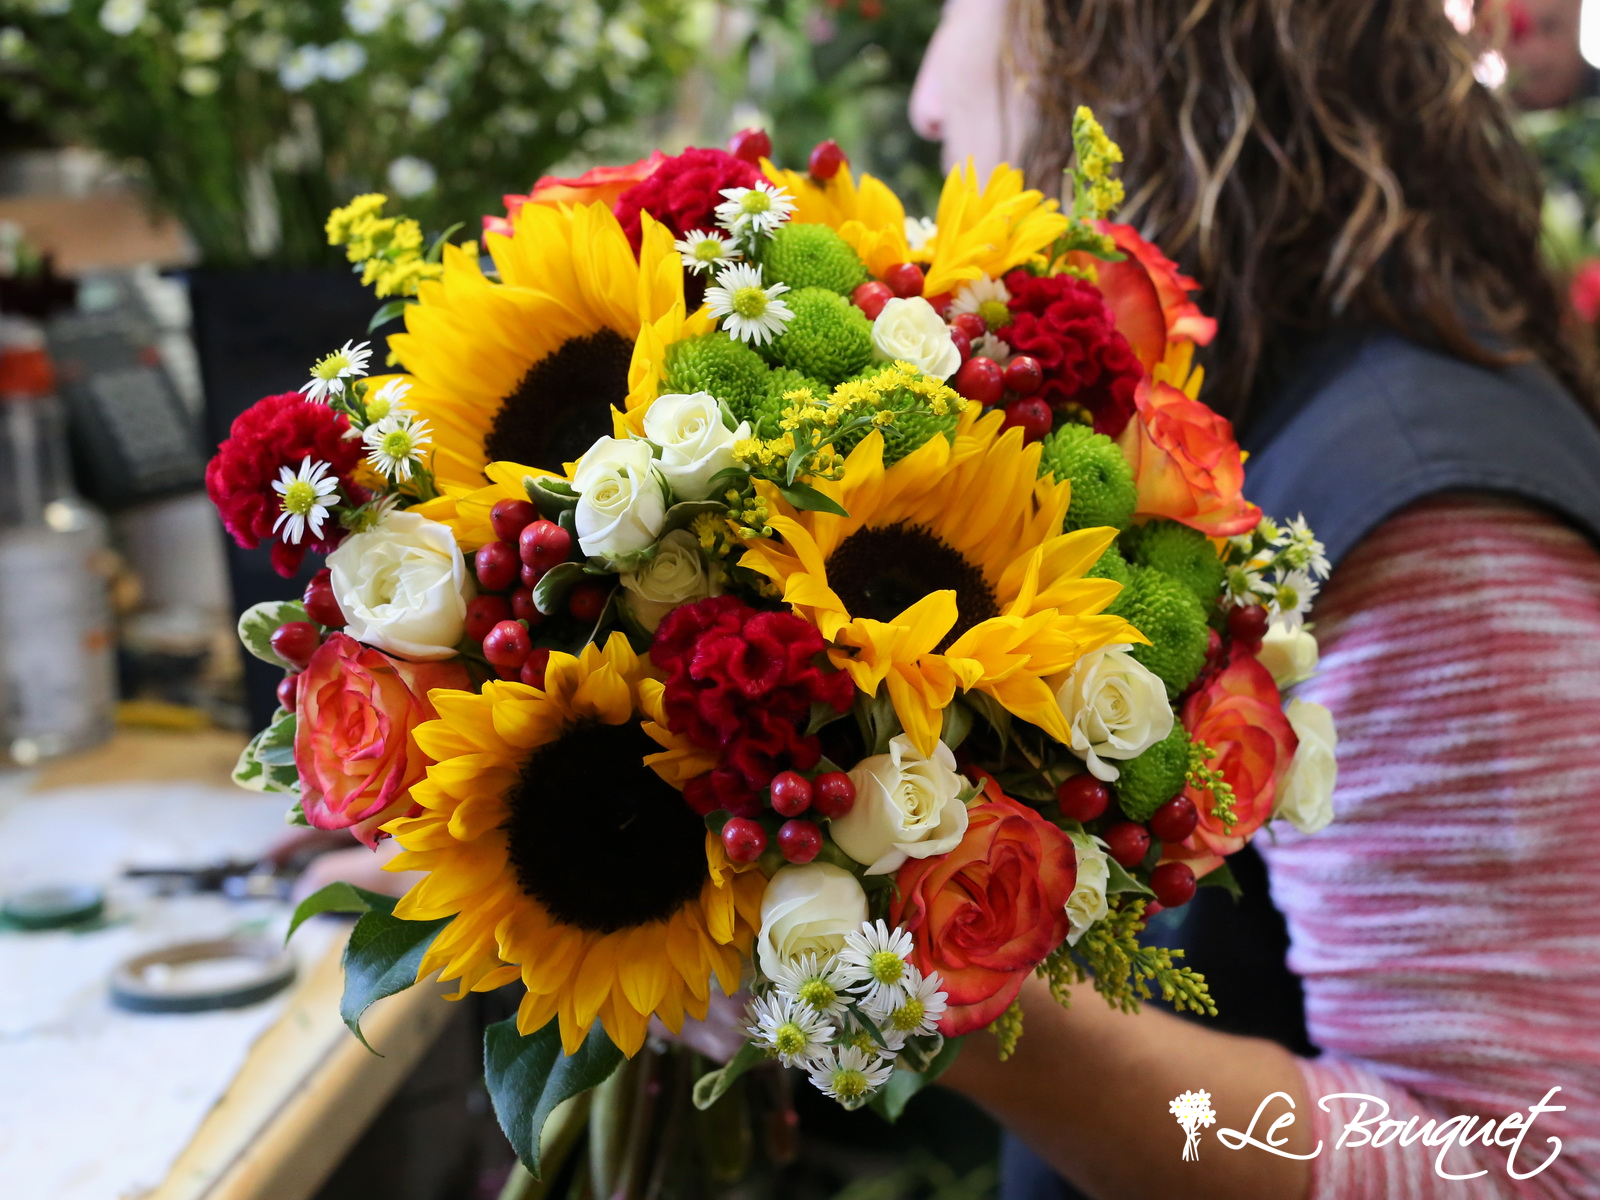 Harvest the Warmth of Autumn with Radiant Bouquets and Décor